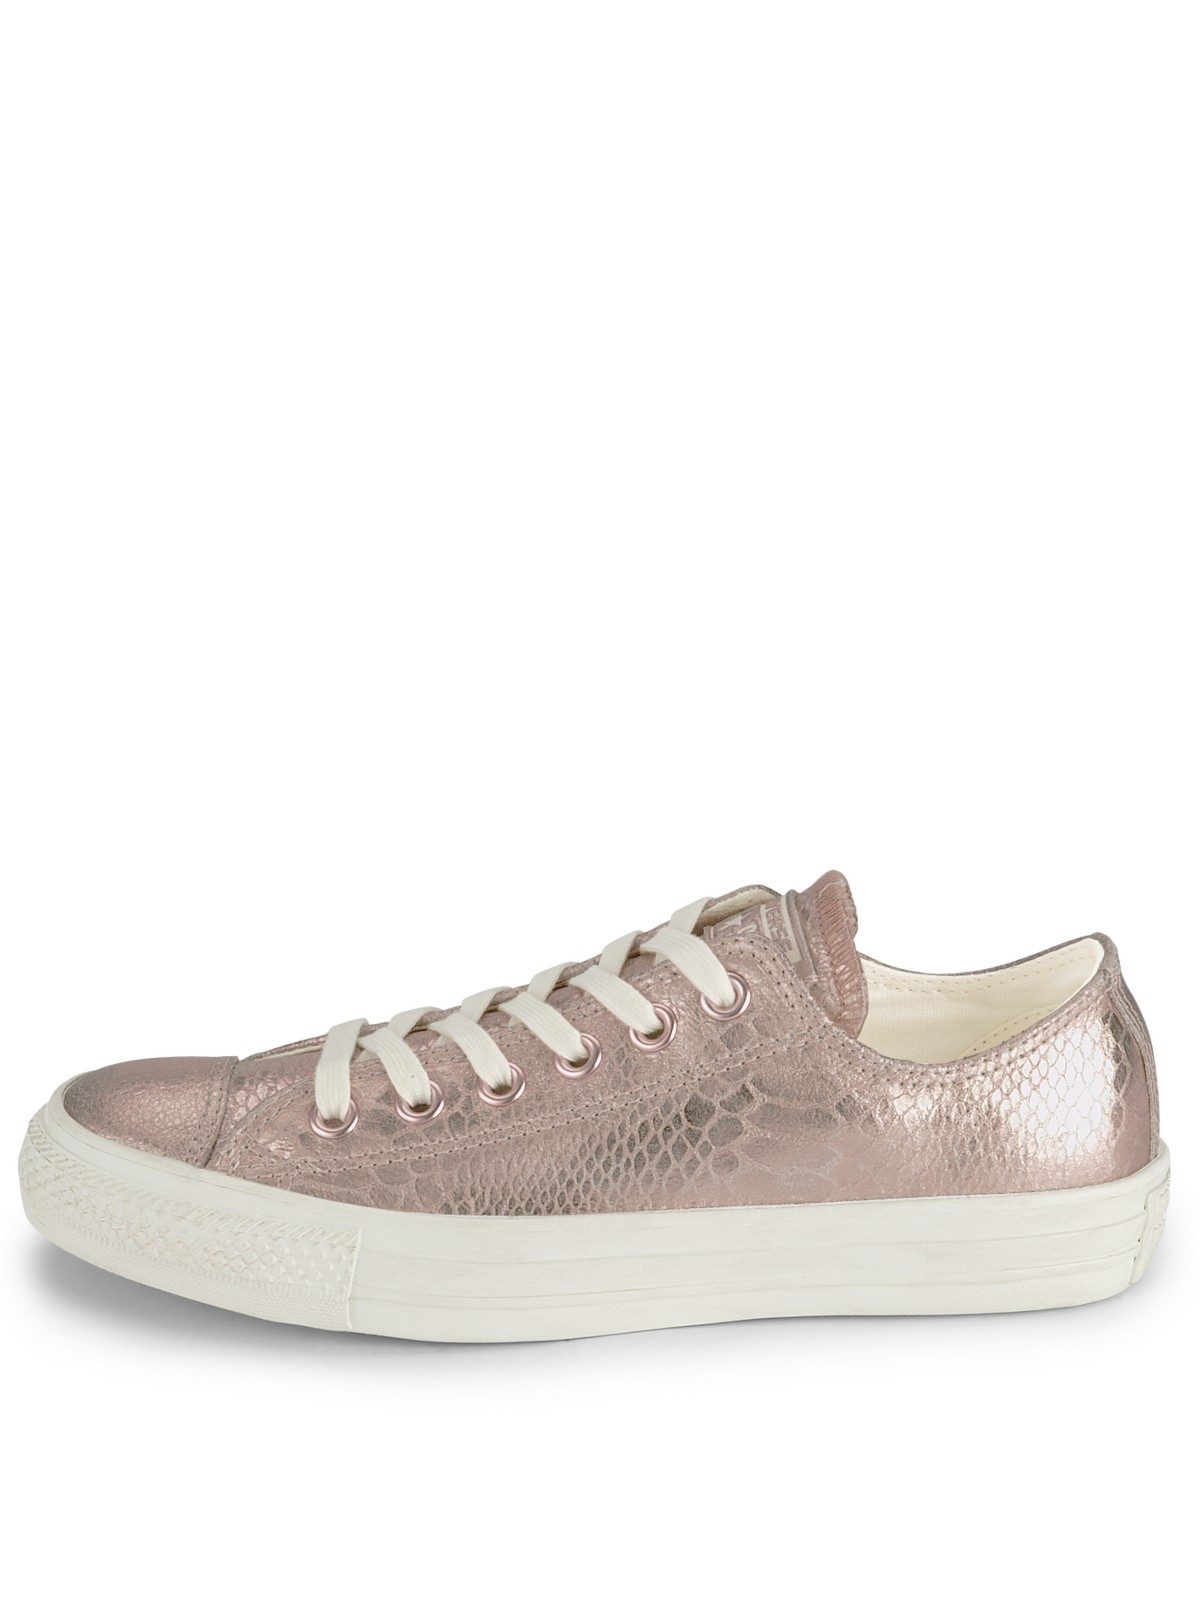 converse converse ctas elevated glam rose gold low plimsolls in gold metallic lyst. Black Bedroom Furniture Sets. Home Design Ideas